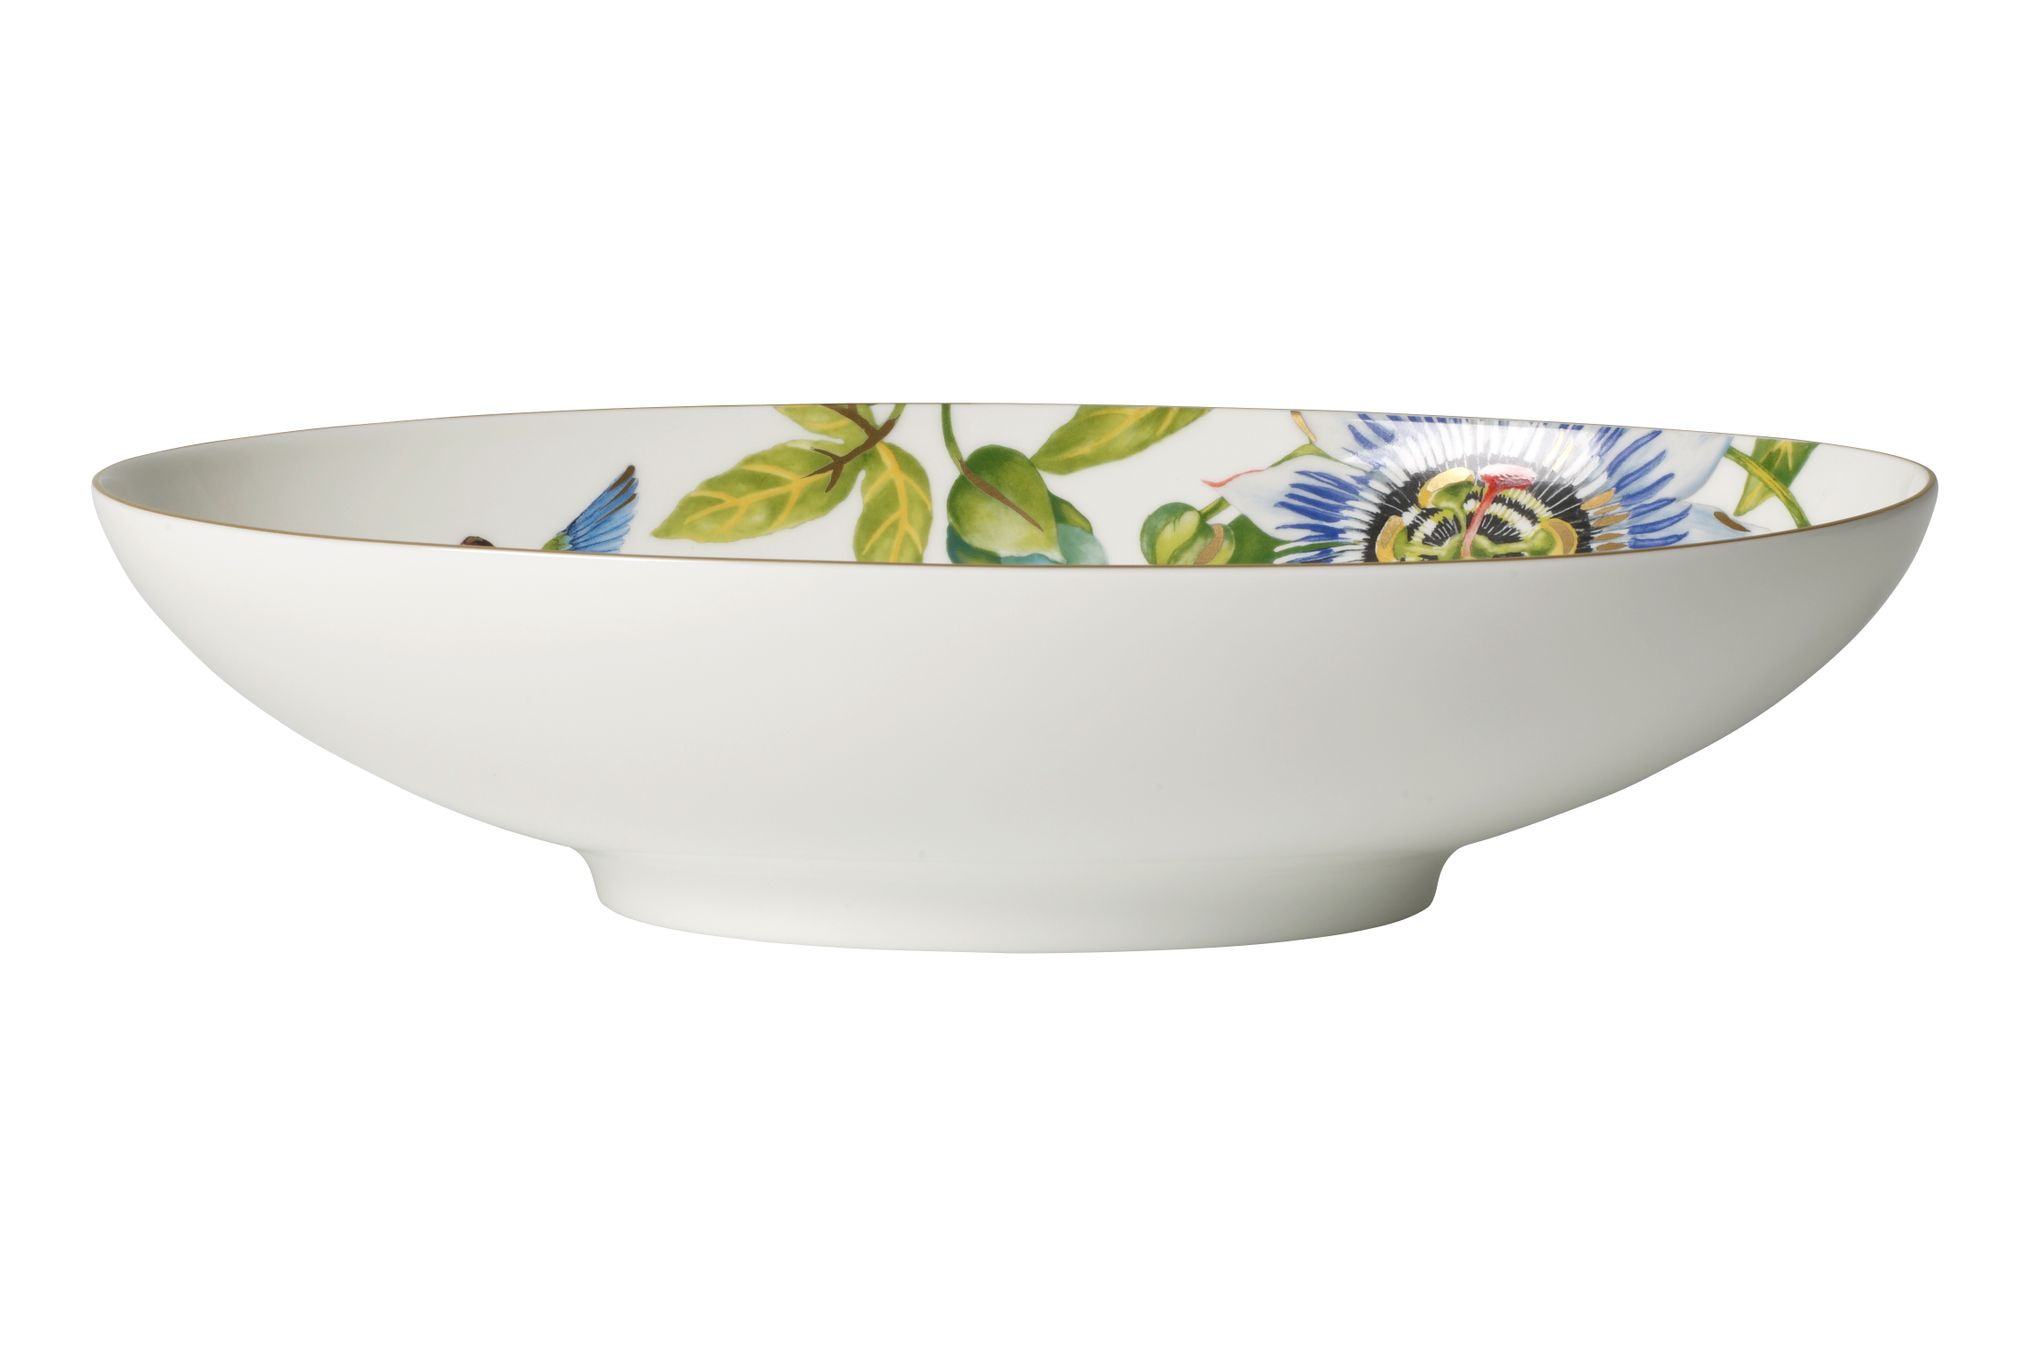 Villeroy & Boch Amazonia Oval Serving Bowl 38 x 22cm thumb 1